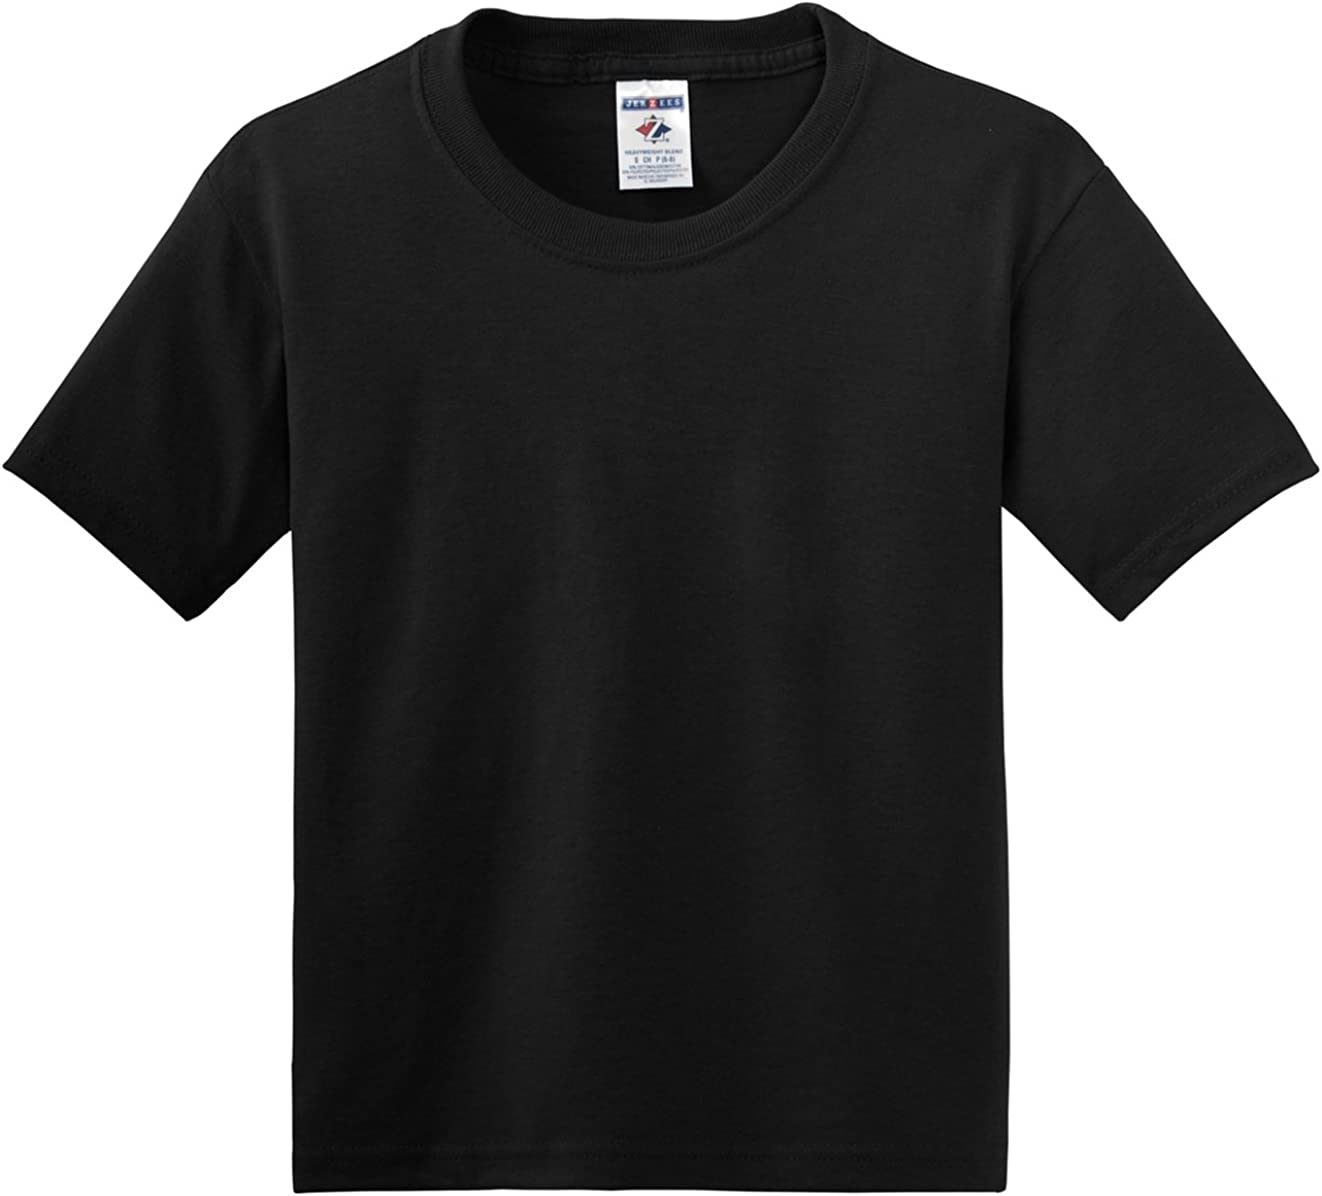 Opening large release sale Jerzees Heavyweight Blend Online limited product T-Shirt 29B